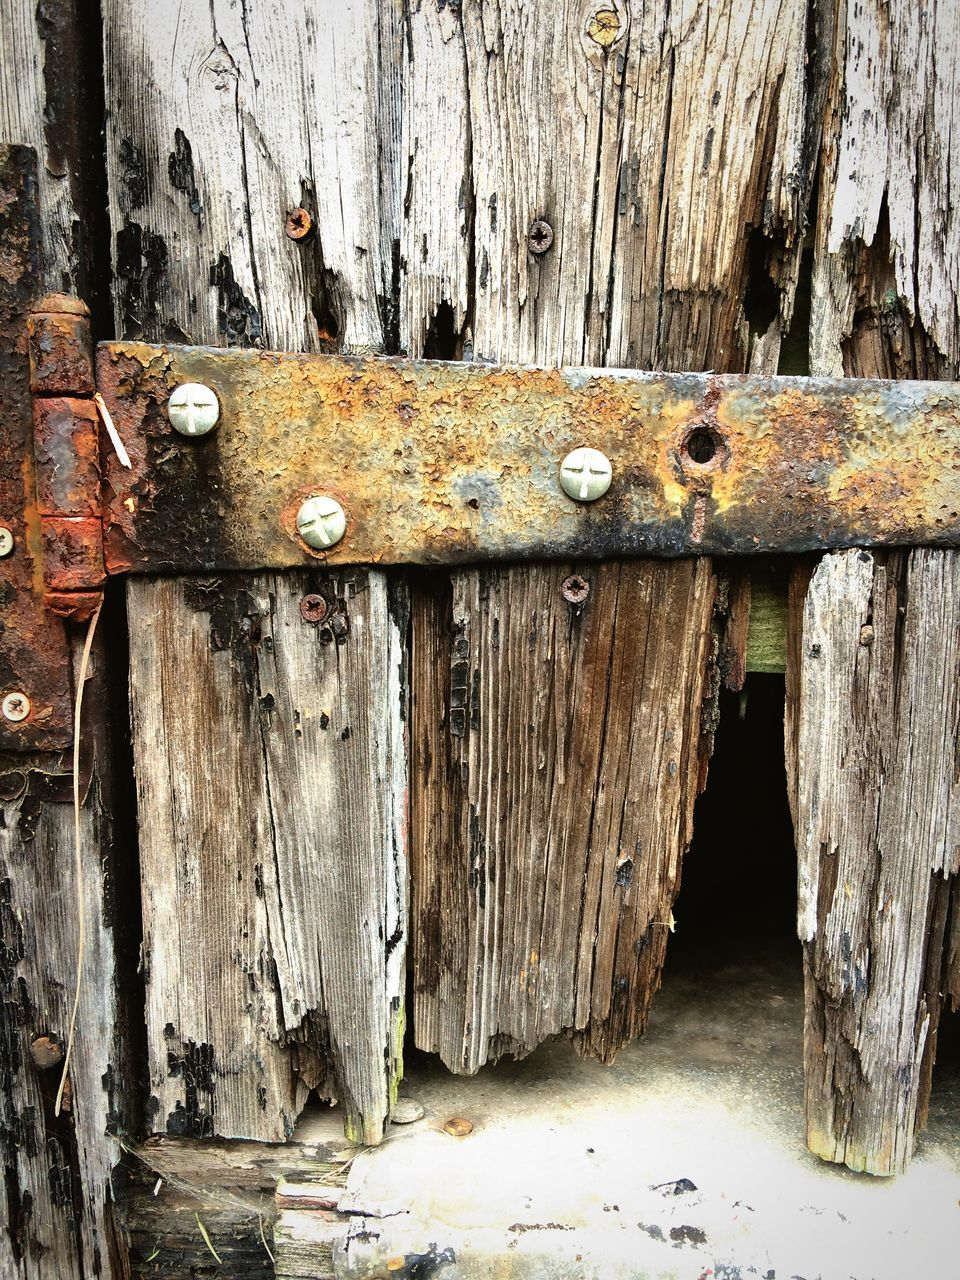 weathered, door, wood - material, damaged, old, rusty, metal, textured, close-up, latch, abandoned, outdoors, hinge, no people, run-down, padlock, day, bad condition